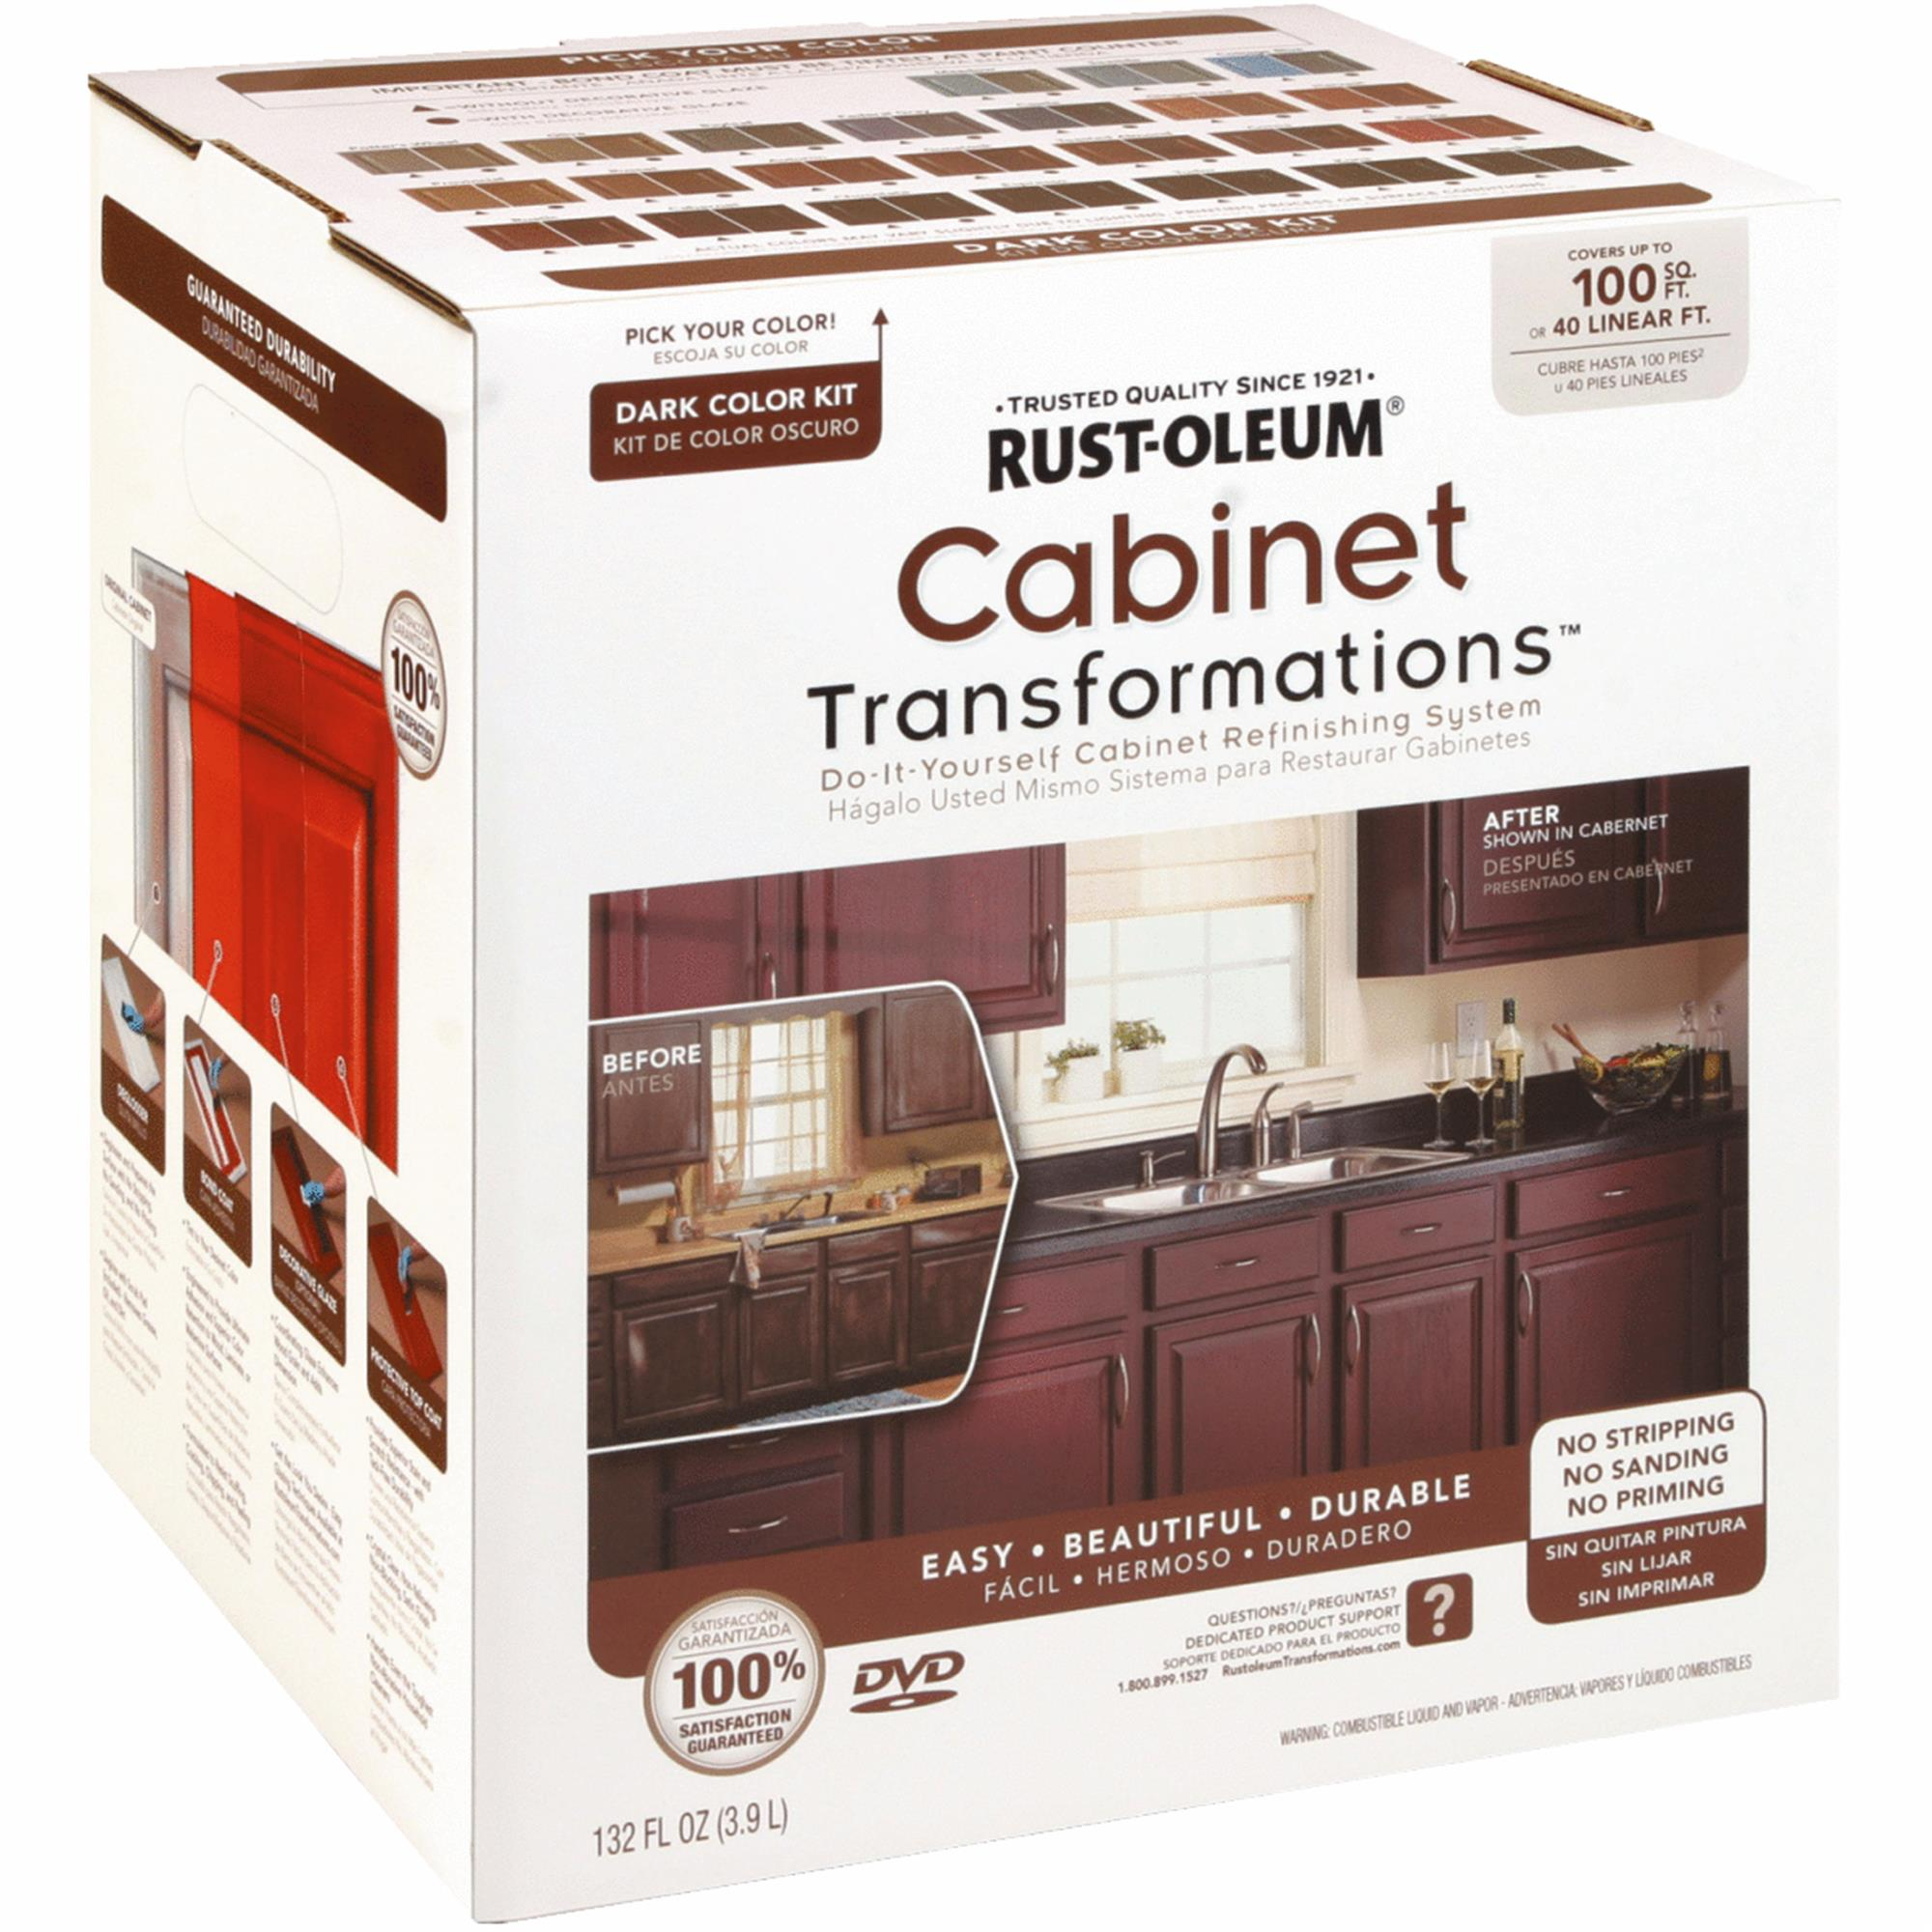 Rust-Oleum Cabinet Transformations Cabinet Coating Kit